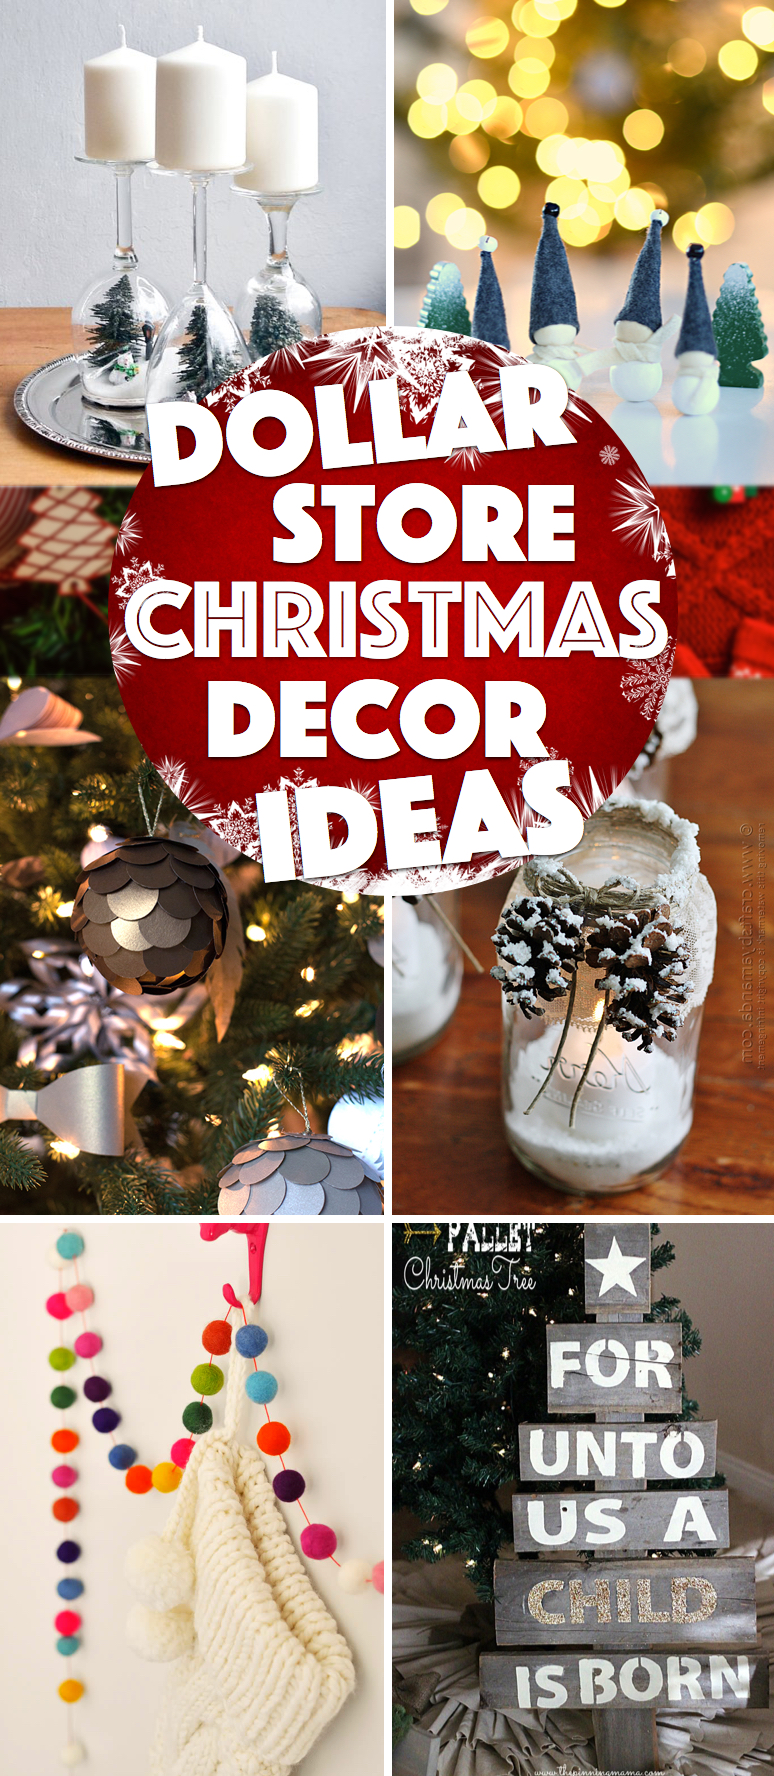 39 Oh So Gorgeous Dollar Store DIY Christmas Decor Ideas